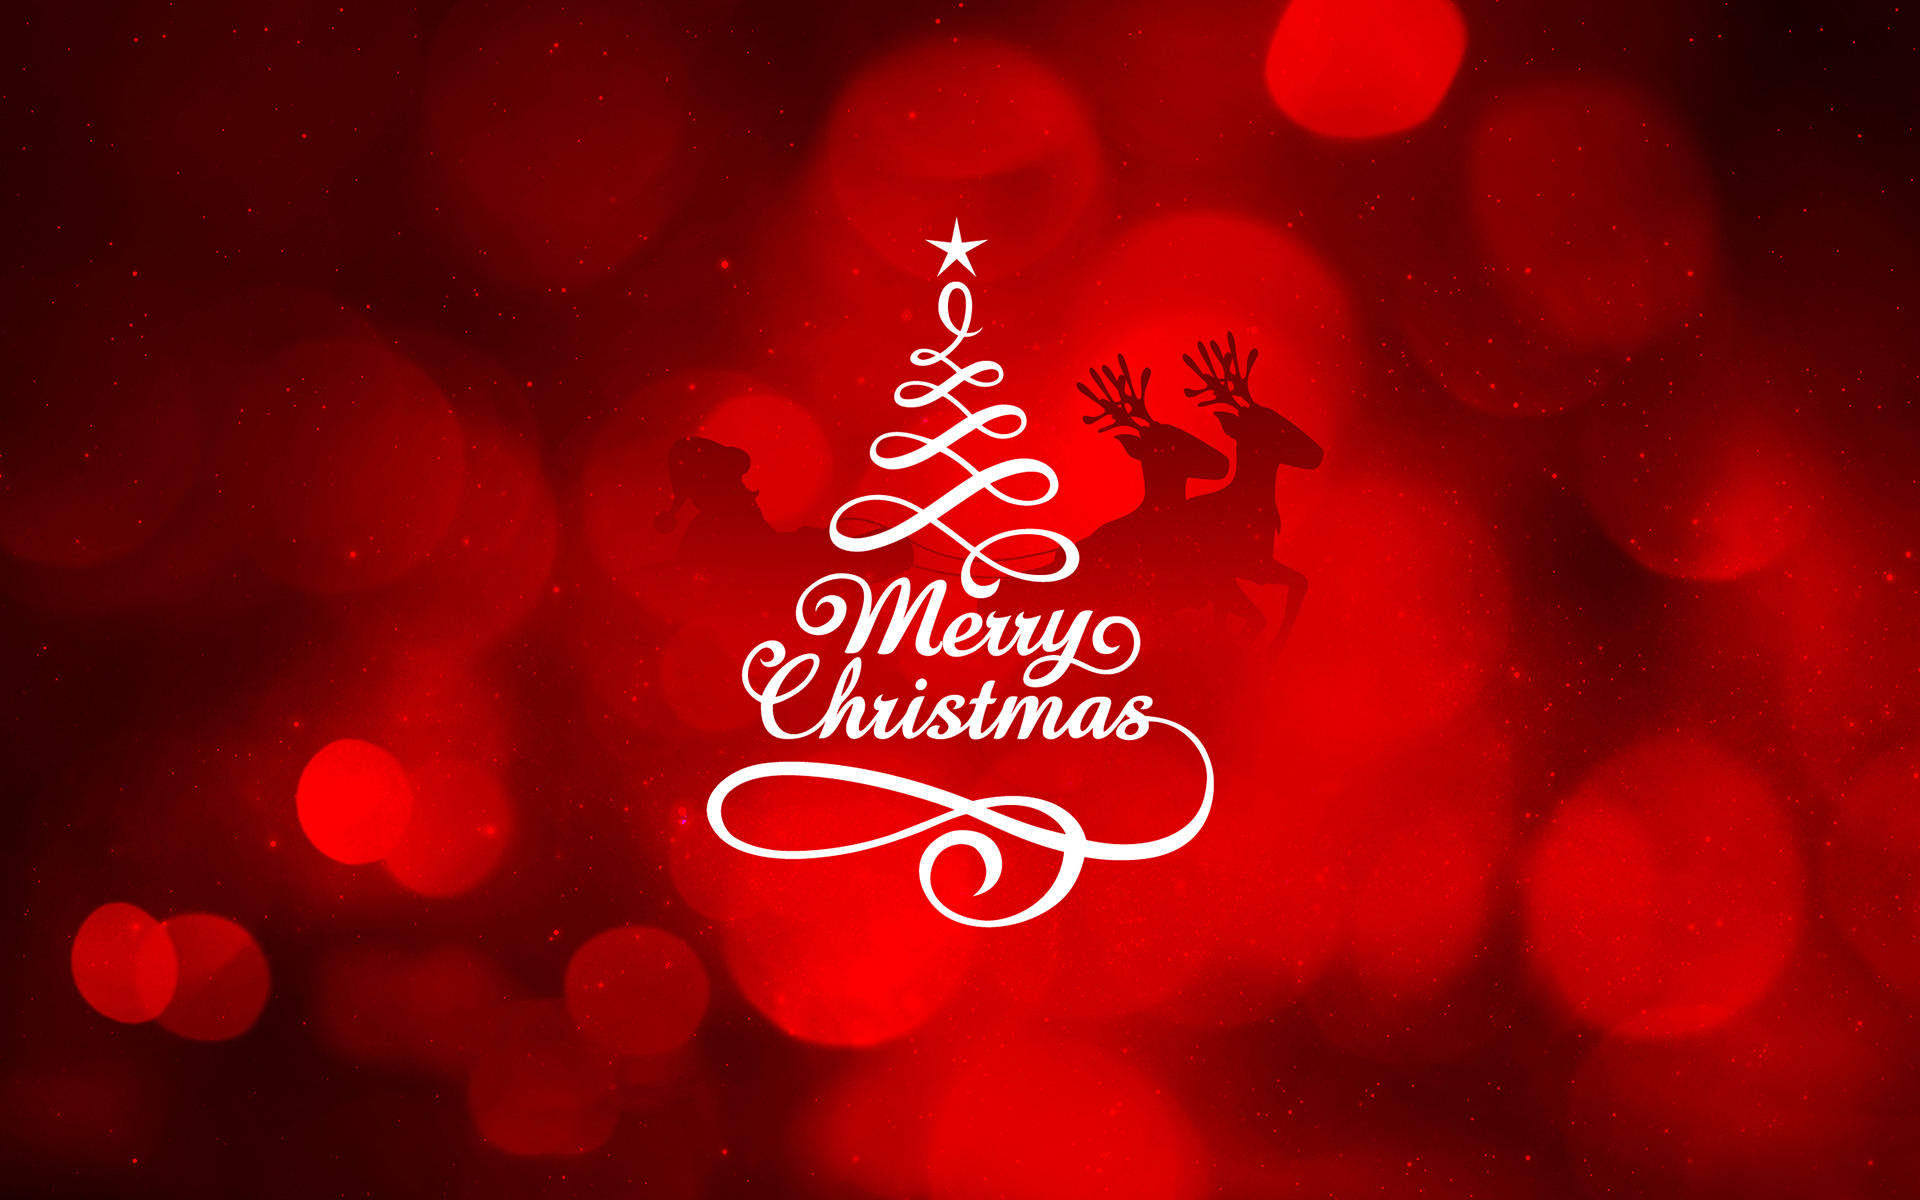 Merry Christmas Wallpaper Background HD